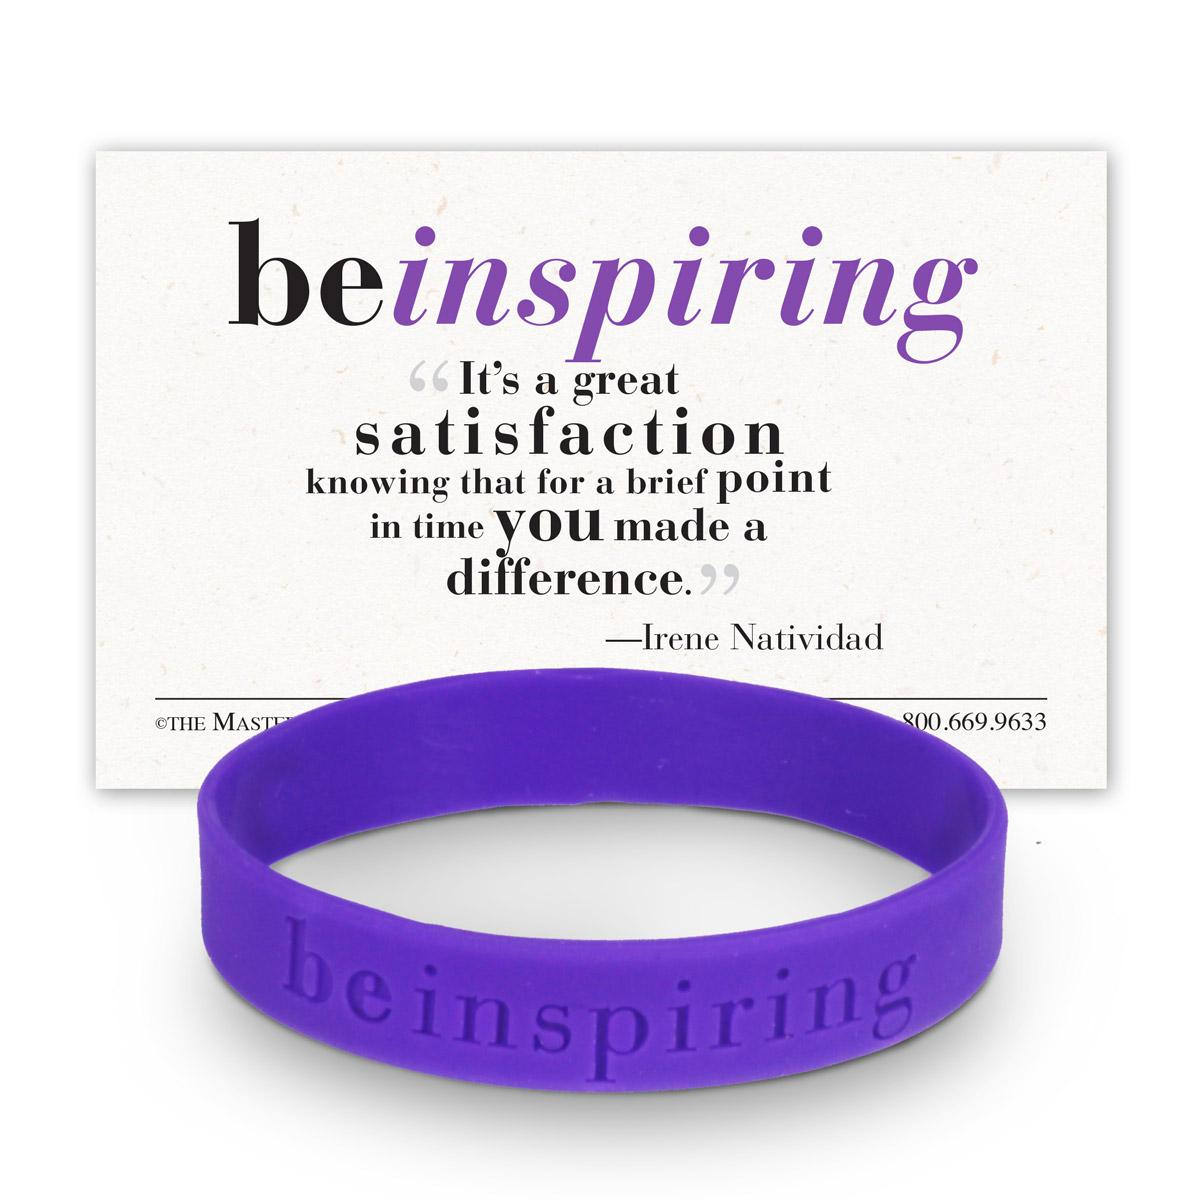 be inspiring purple silicone wristband and message card